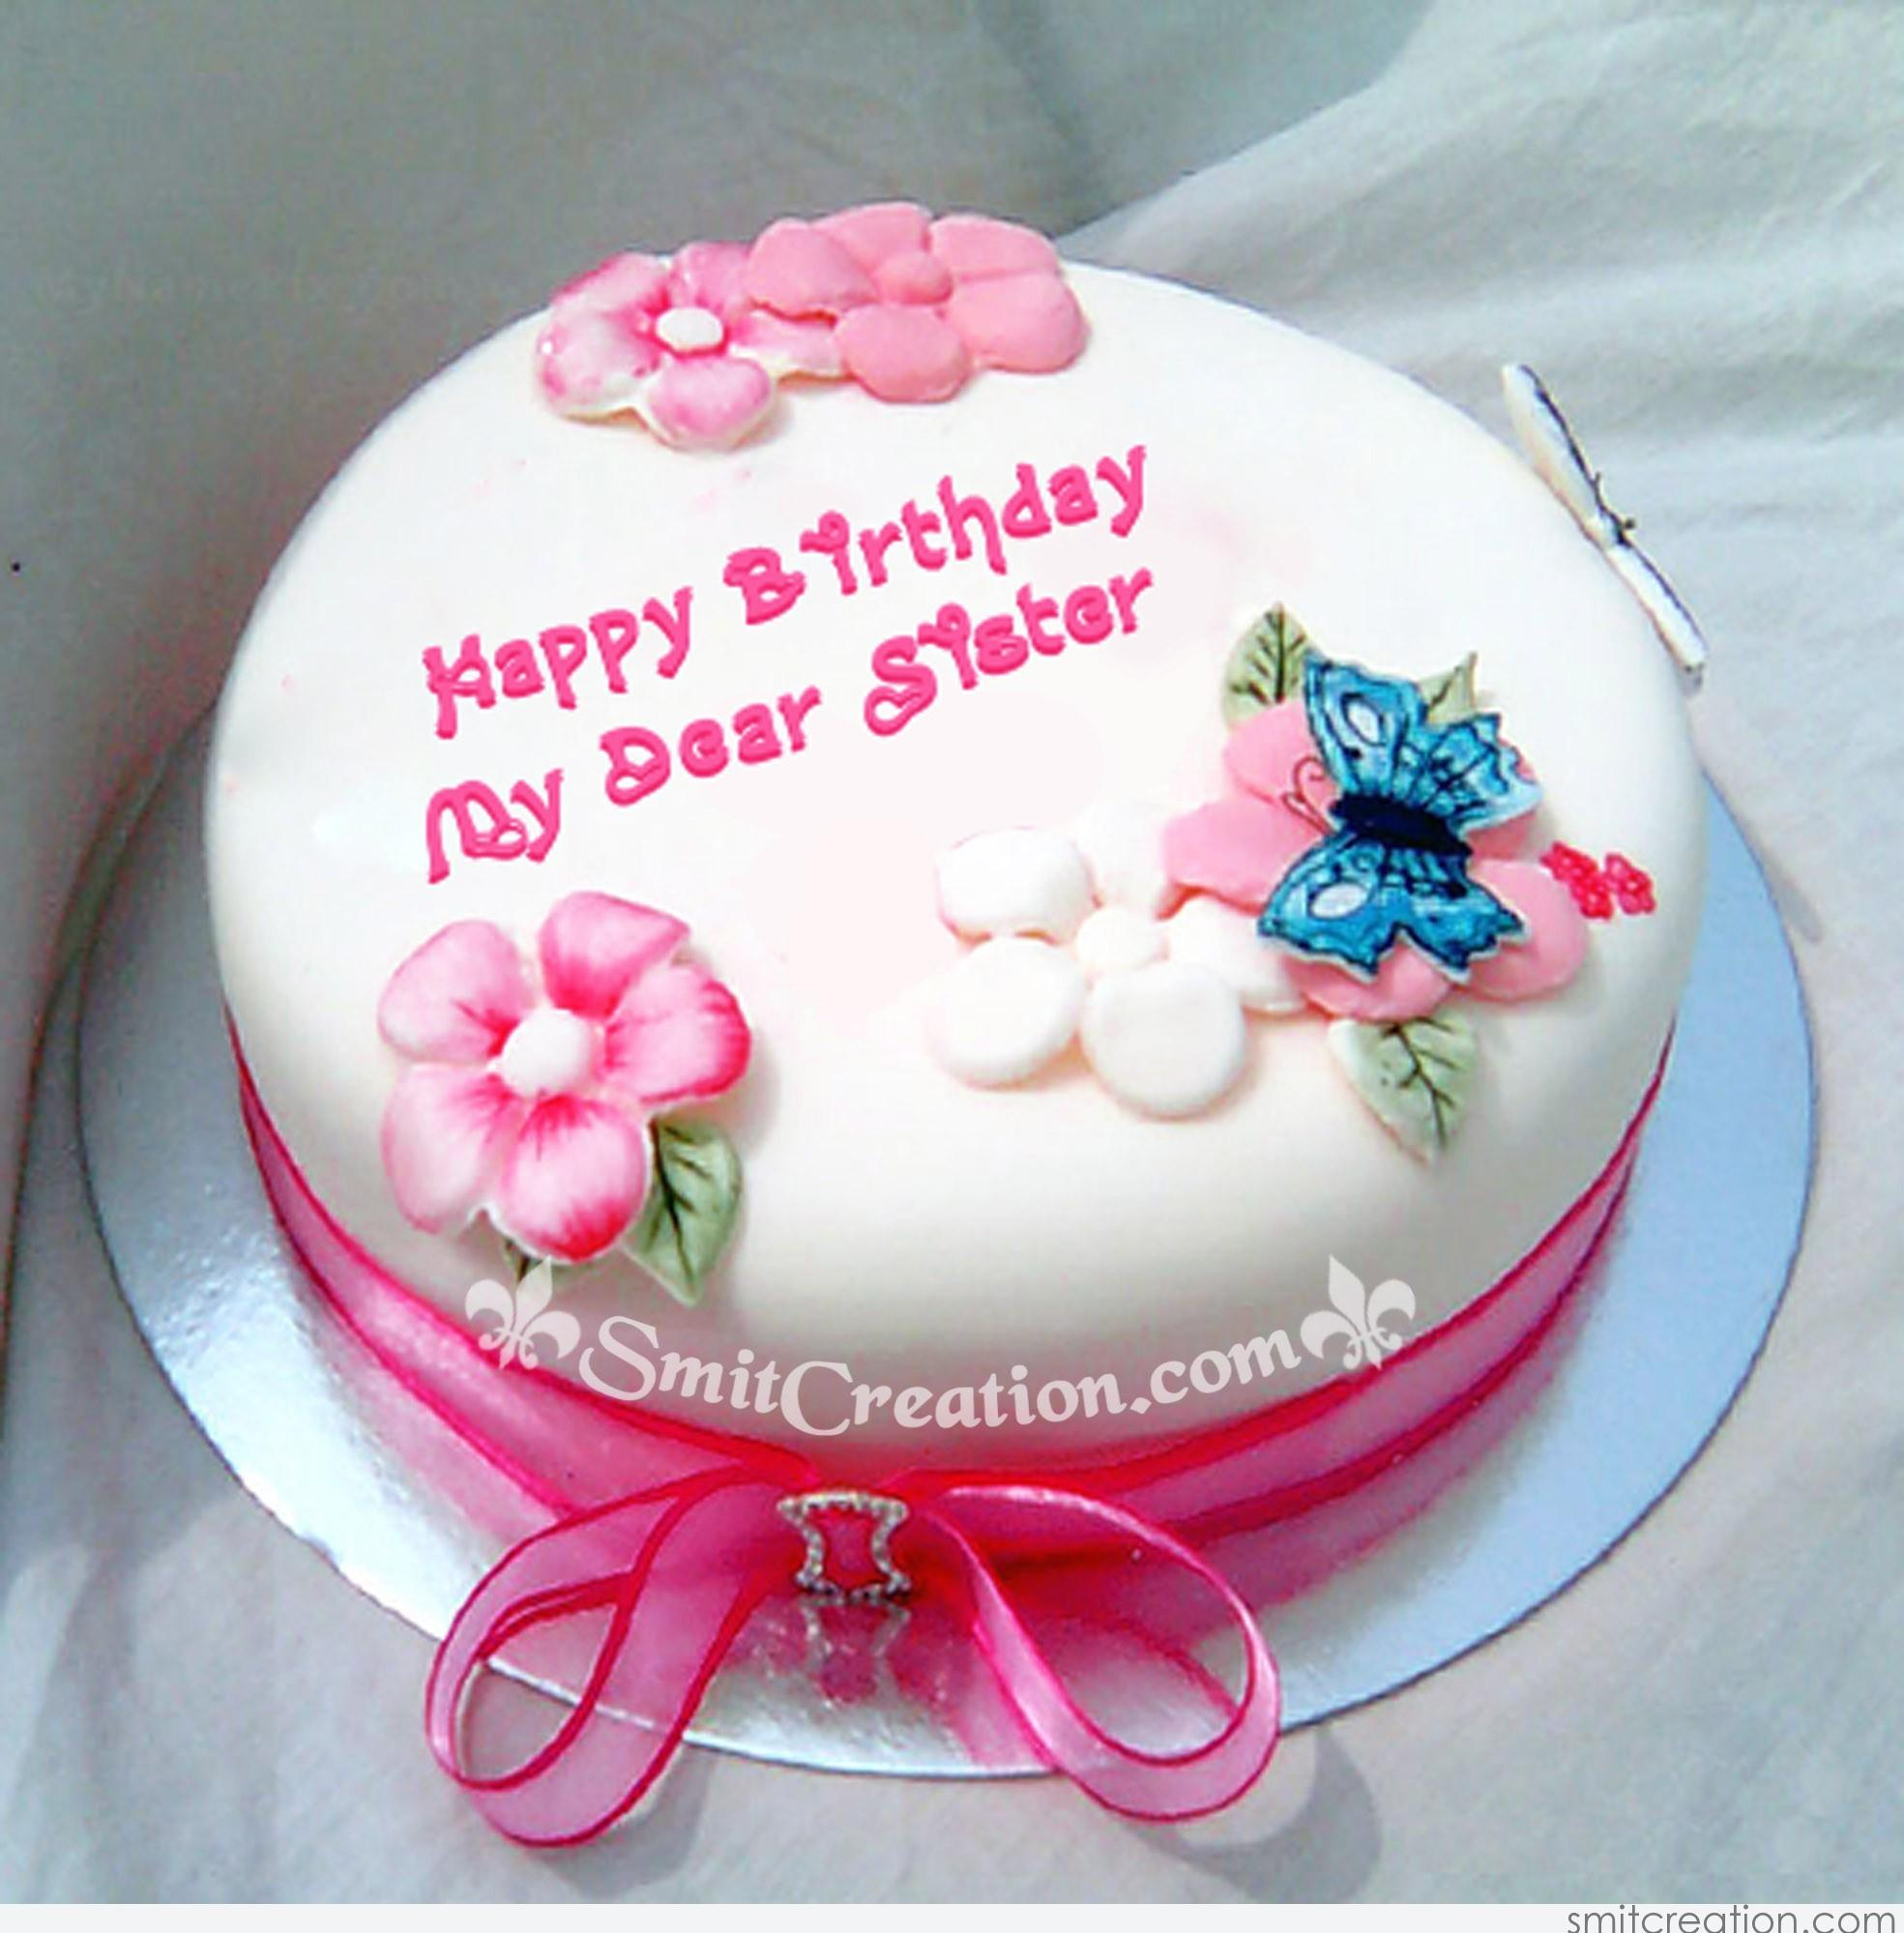 Image Of Birthday Cake For Sister To Share On Facebook